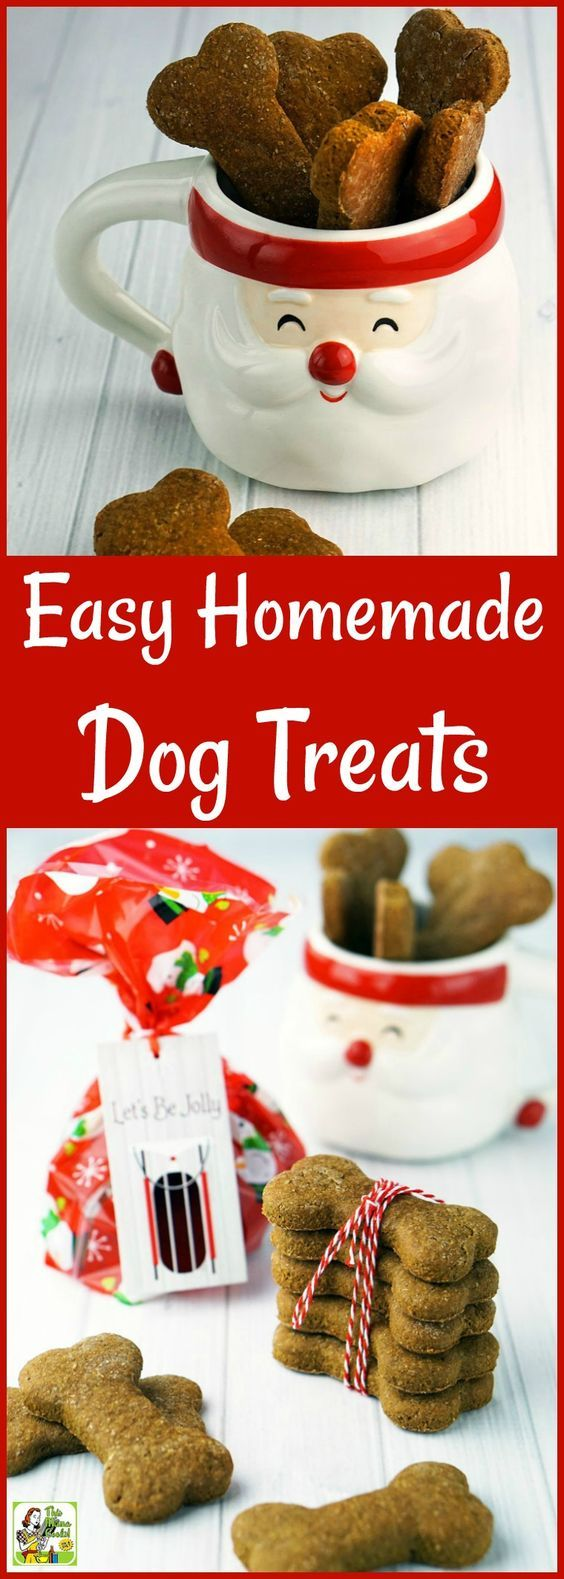 Looking for an easy homemade gift recipe for someone with a dog? Click to get this Easy Homemade Dog Treats recipe. #dog #dogs #dogtreats #healthydog #healthydogtreats #homemadedogtreats #homemadetreats #homemadegifts #dogbiscuits #dogtreat #glutenfree #wholewheat #healthytreat #doglover #doglovers